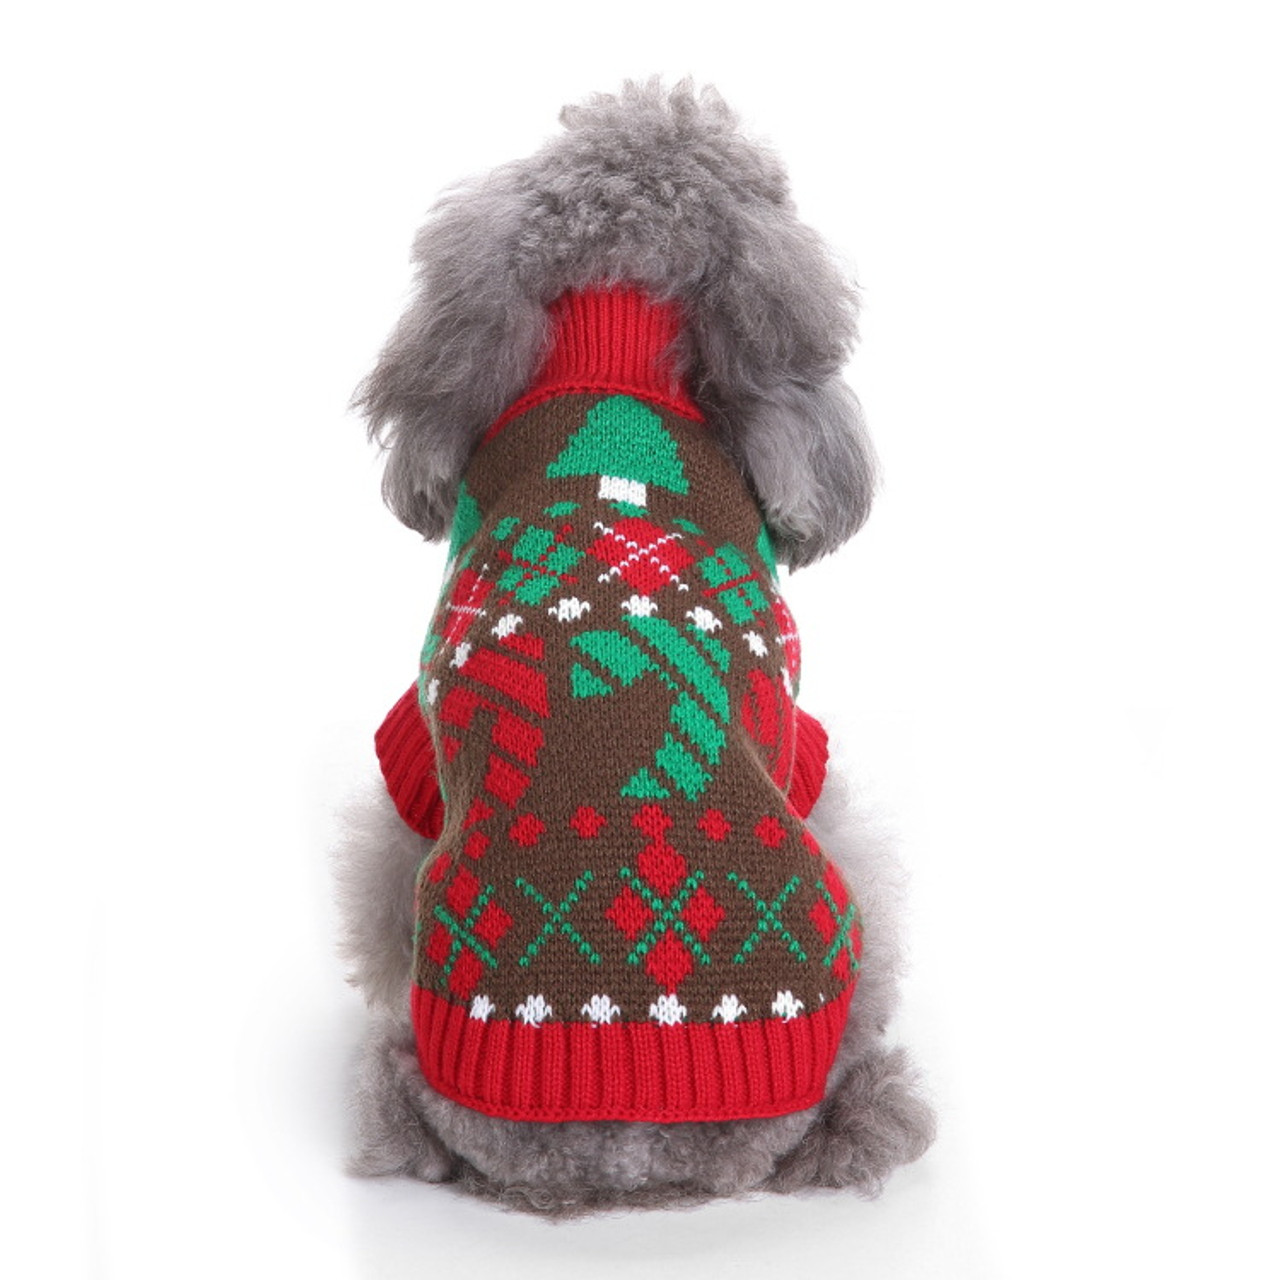 Pet Christmas Sweater Knit Turtleneck Pet Clothes Sweater